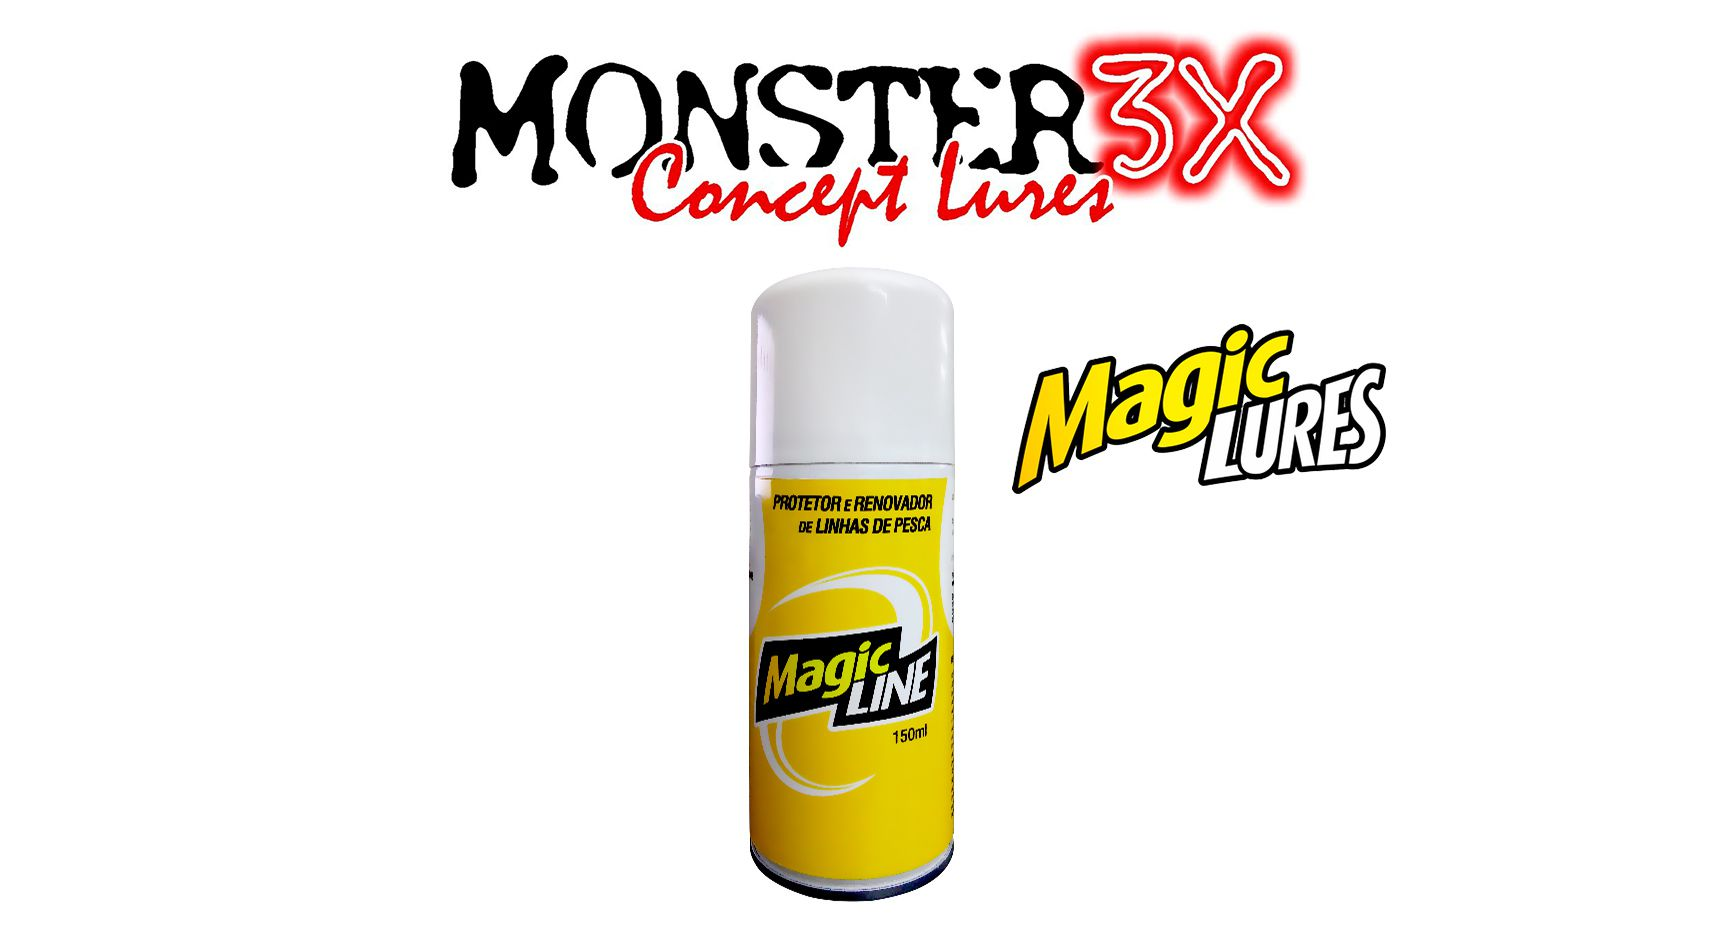 Renovador de Linhas de Pesca - Magic Line - Monster 3X